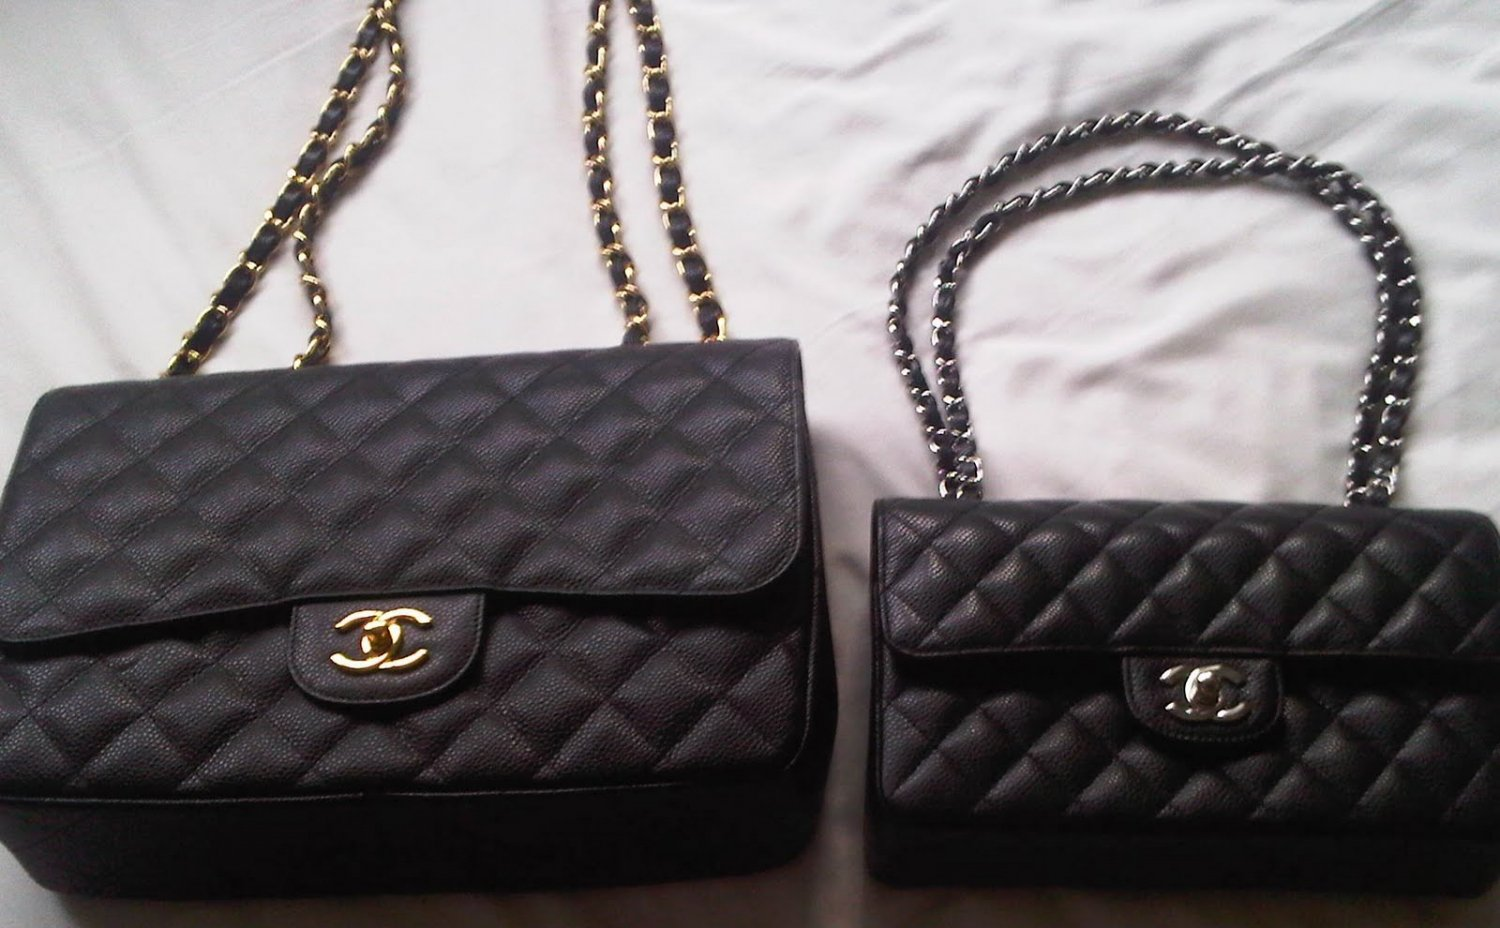 Chanel Handbag Price 2017 Reviews 2018